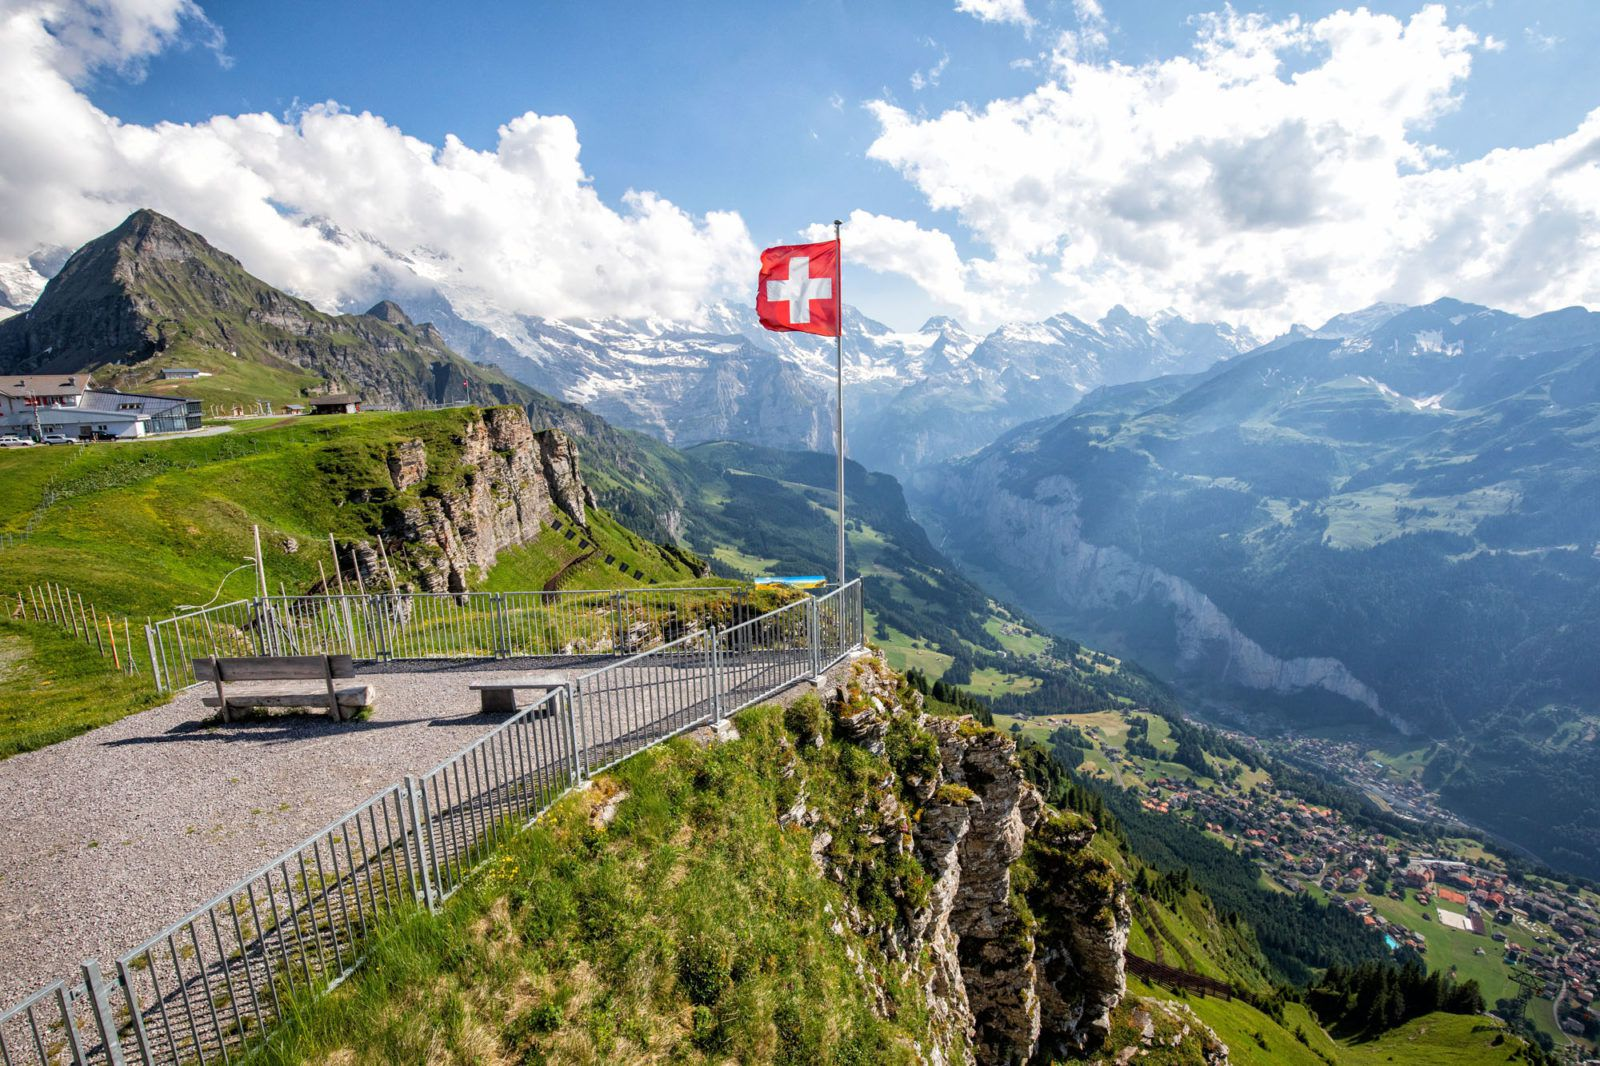 Best Things to do in the Jungfrau Region